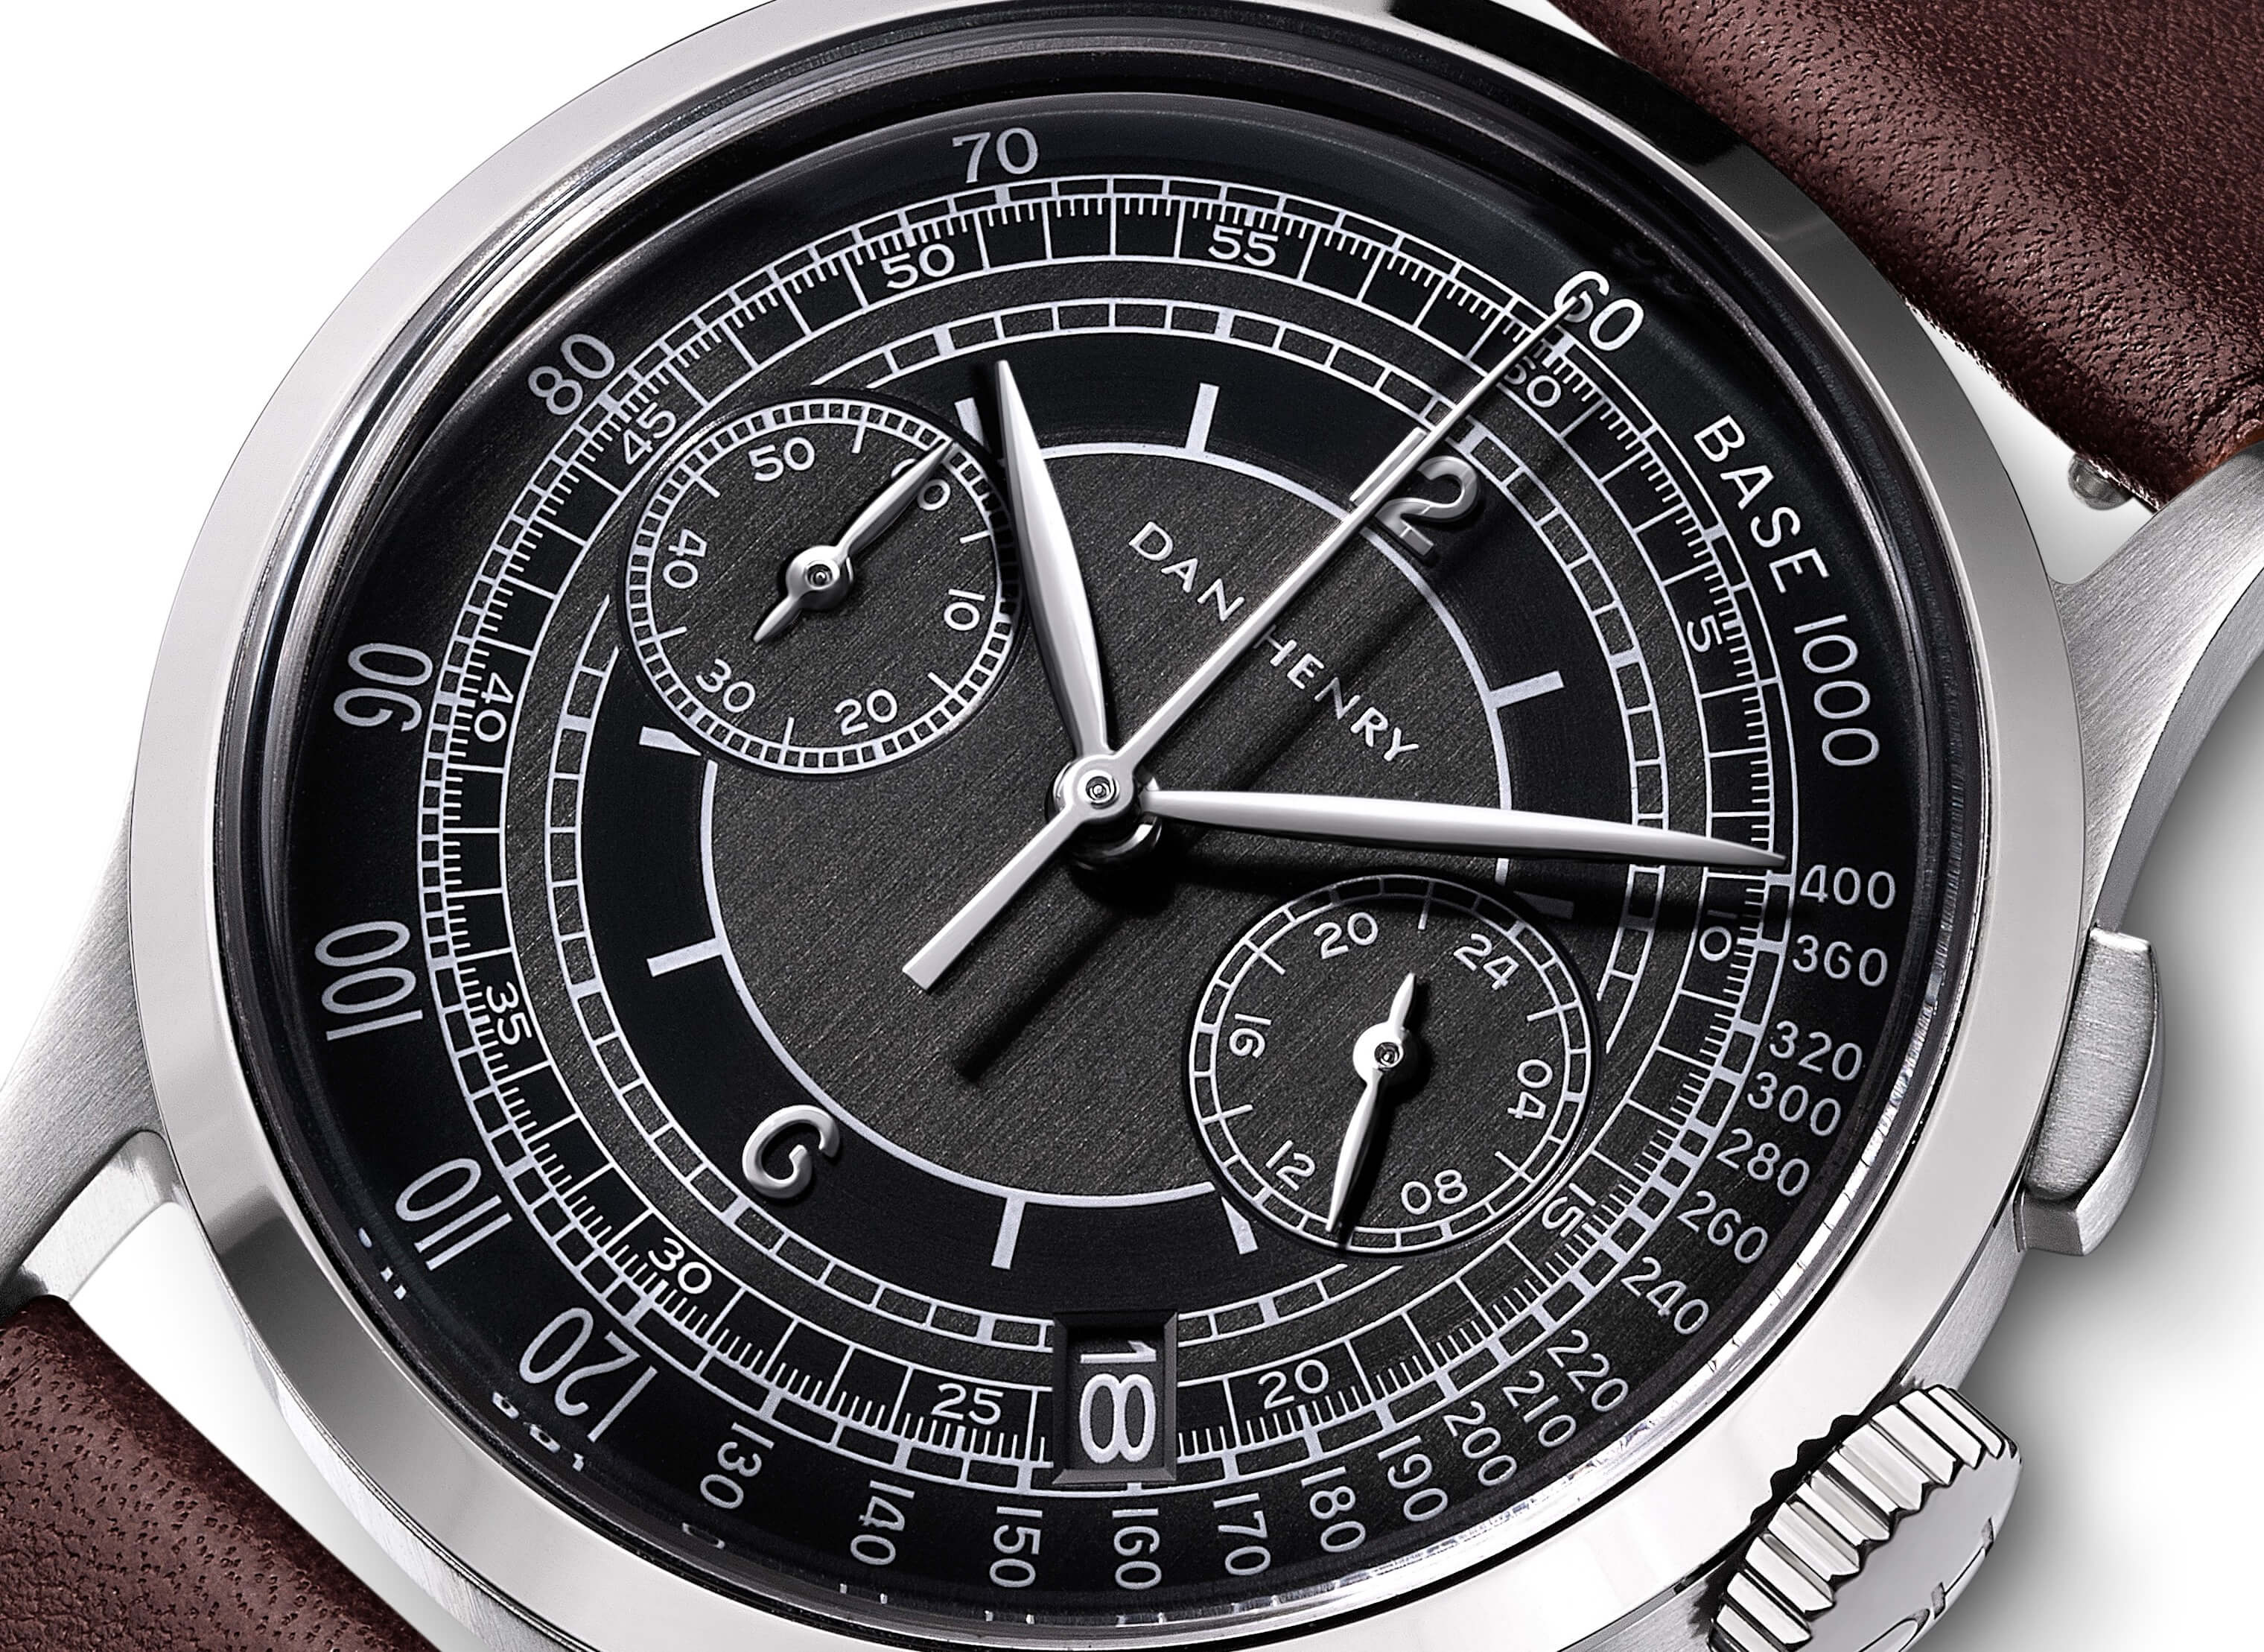 <h3>Dial</h3><p>Onyx sector dial with Tachymeter, silver applied numbers, Leaf-shaped hands, and date window </p>